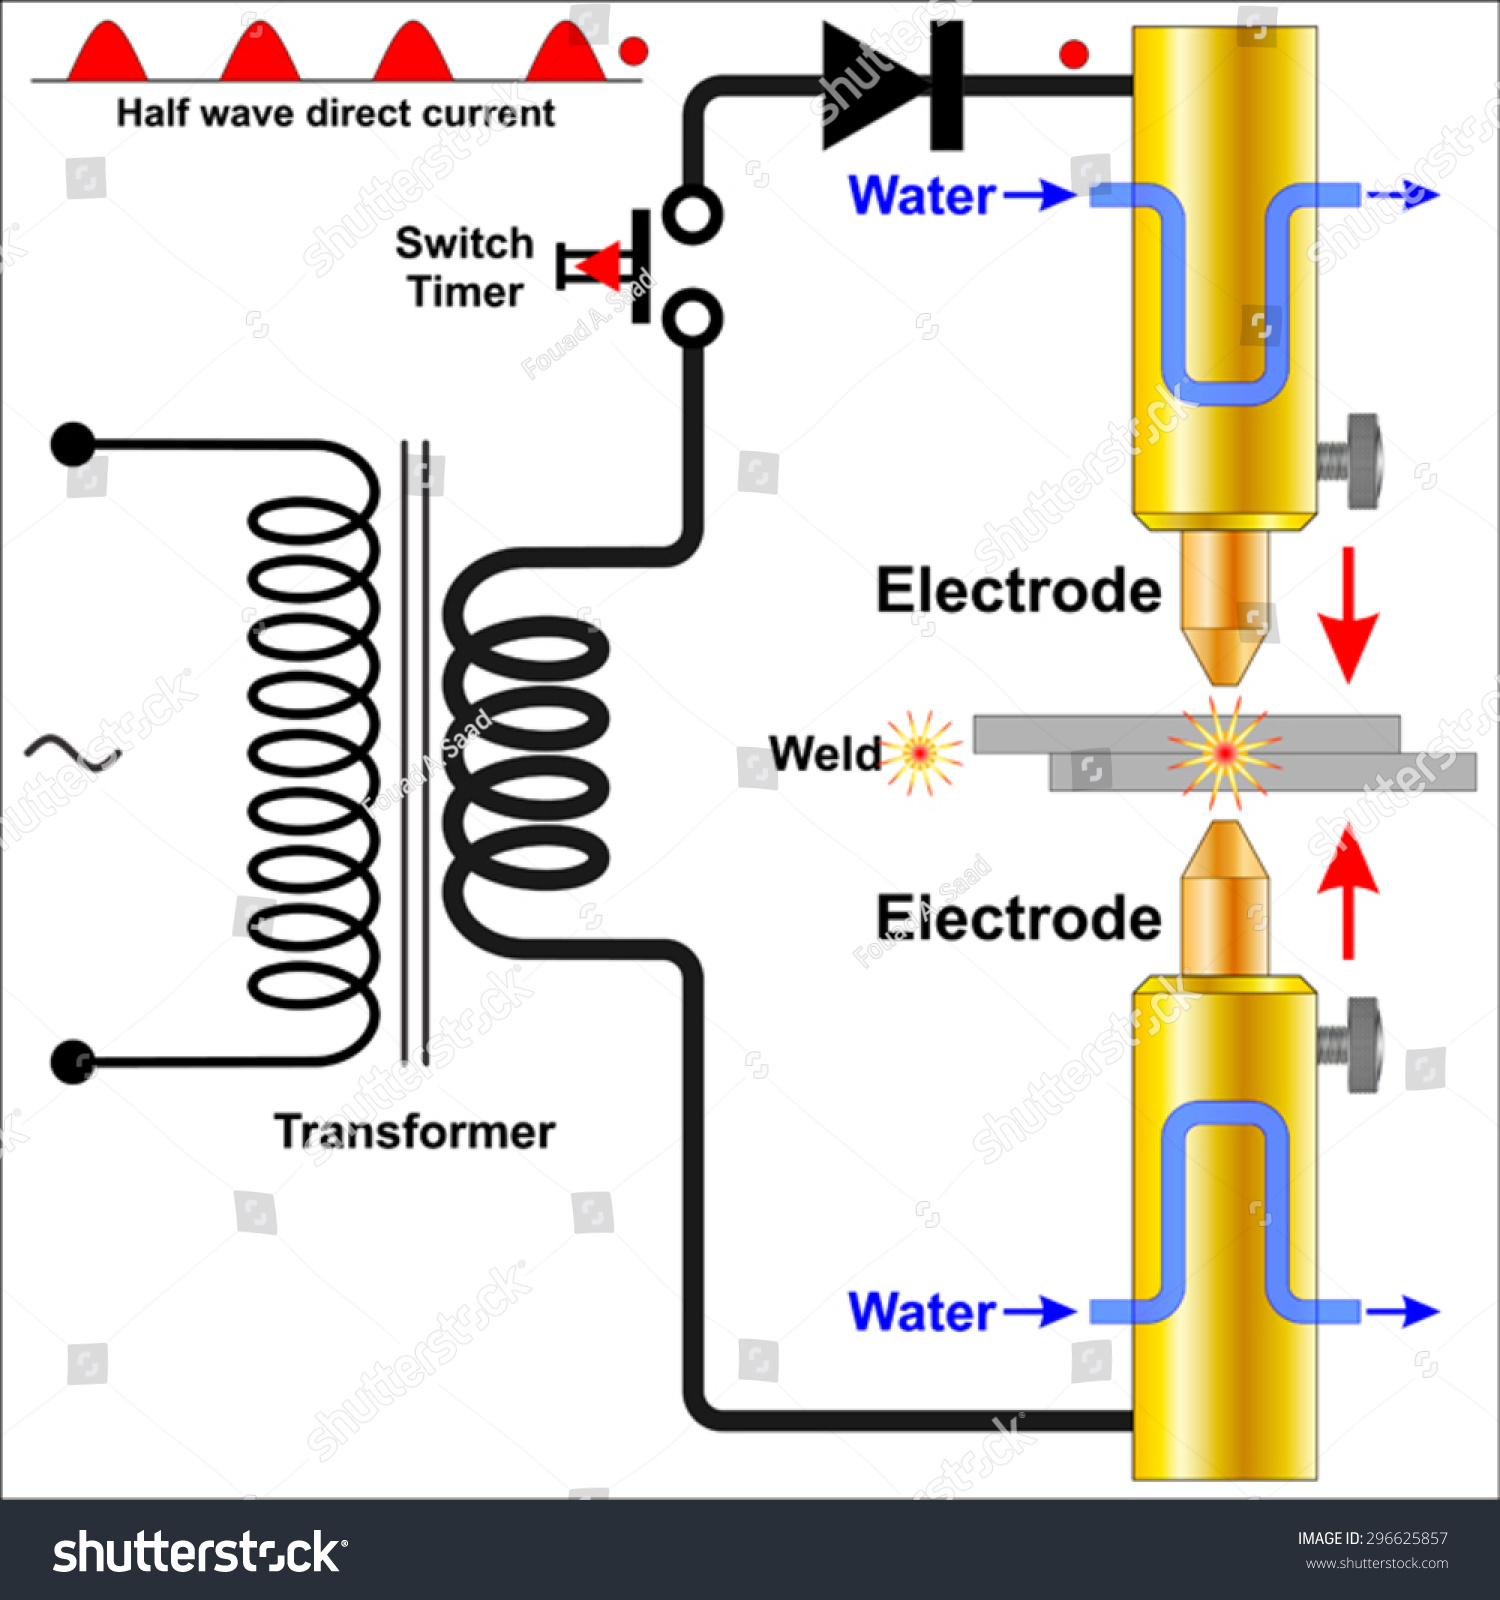 Spot Welding Machine Diagram Control Wiring Schematic Resistance Stock Vector Royalty Free 296625857 Rh Shutterstock Com